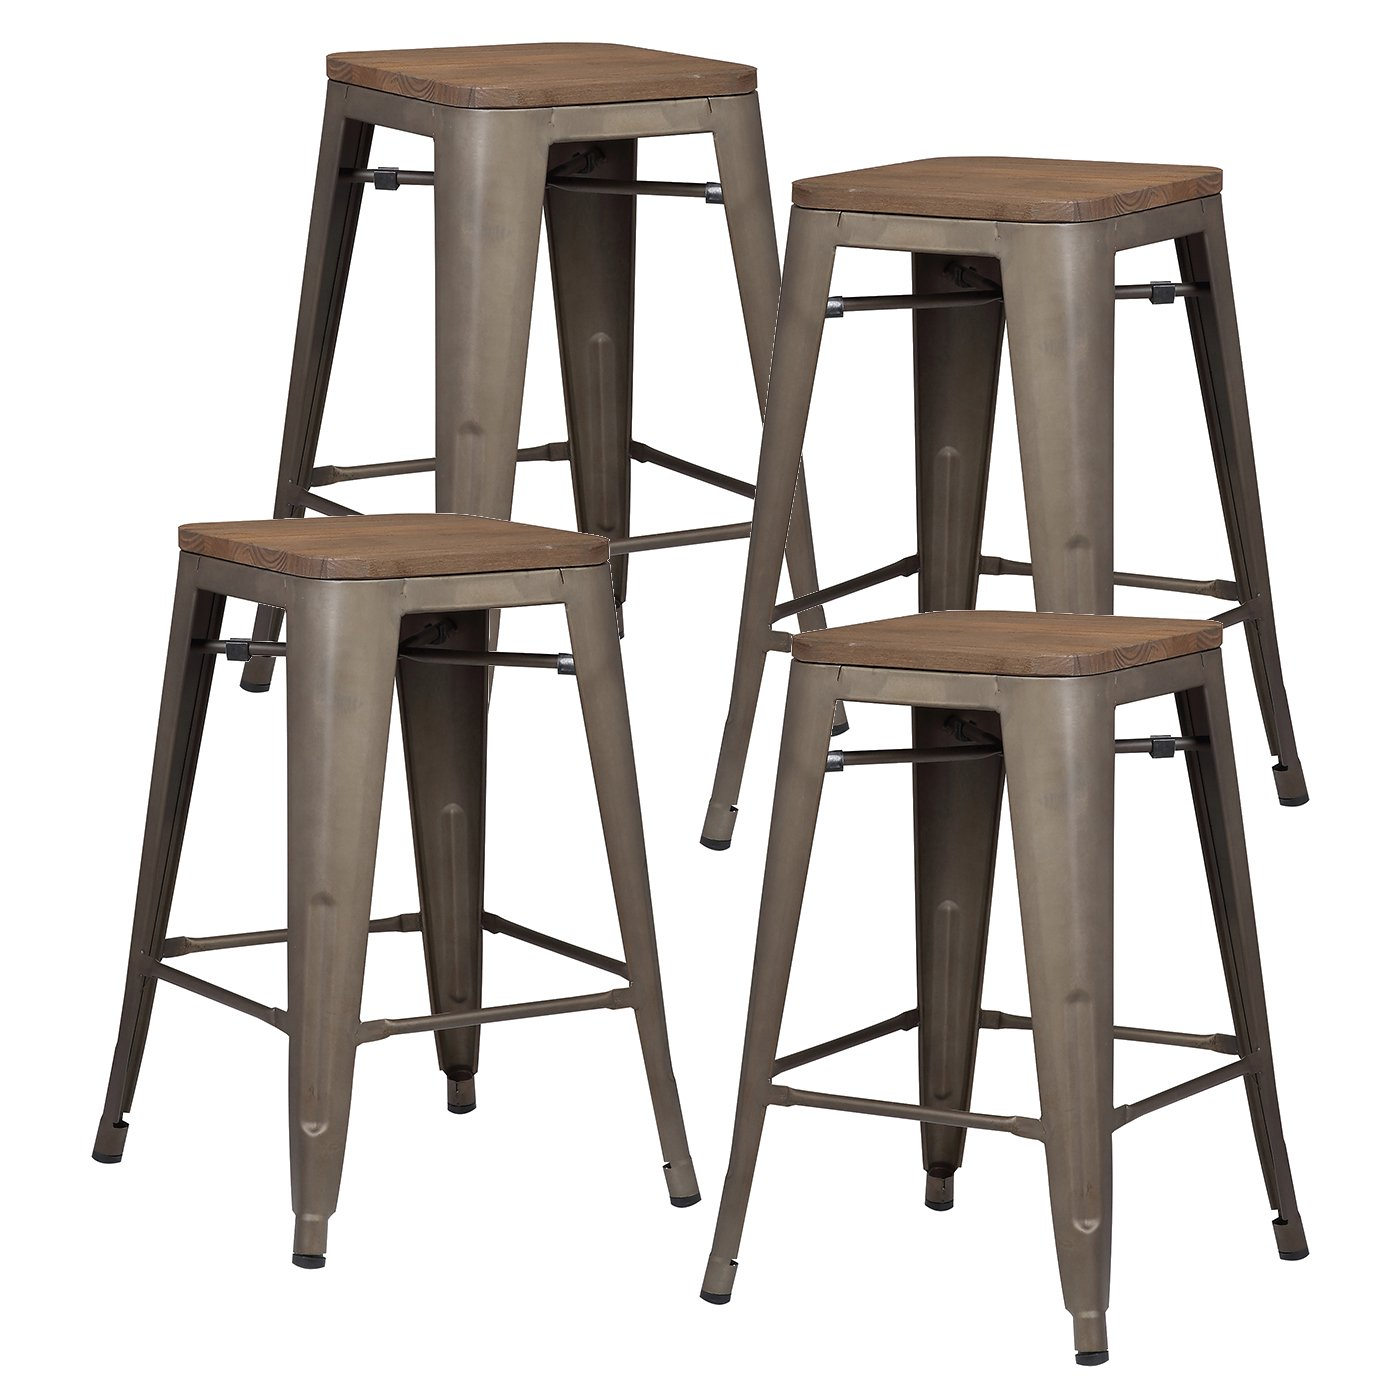 Hillsdale Furniture Cadman Counter Stool, Dull Nickel